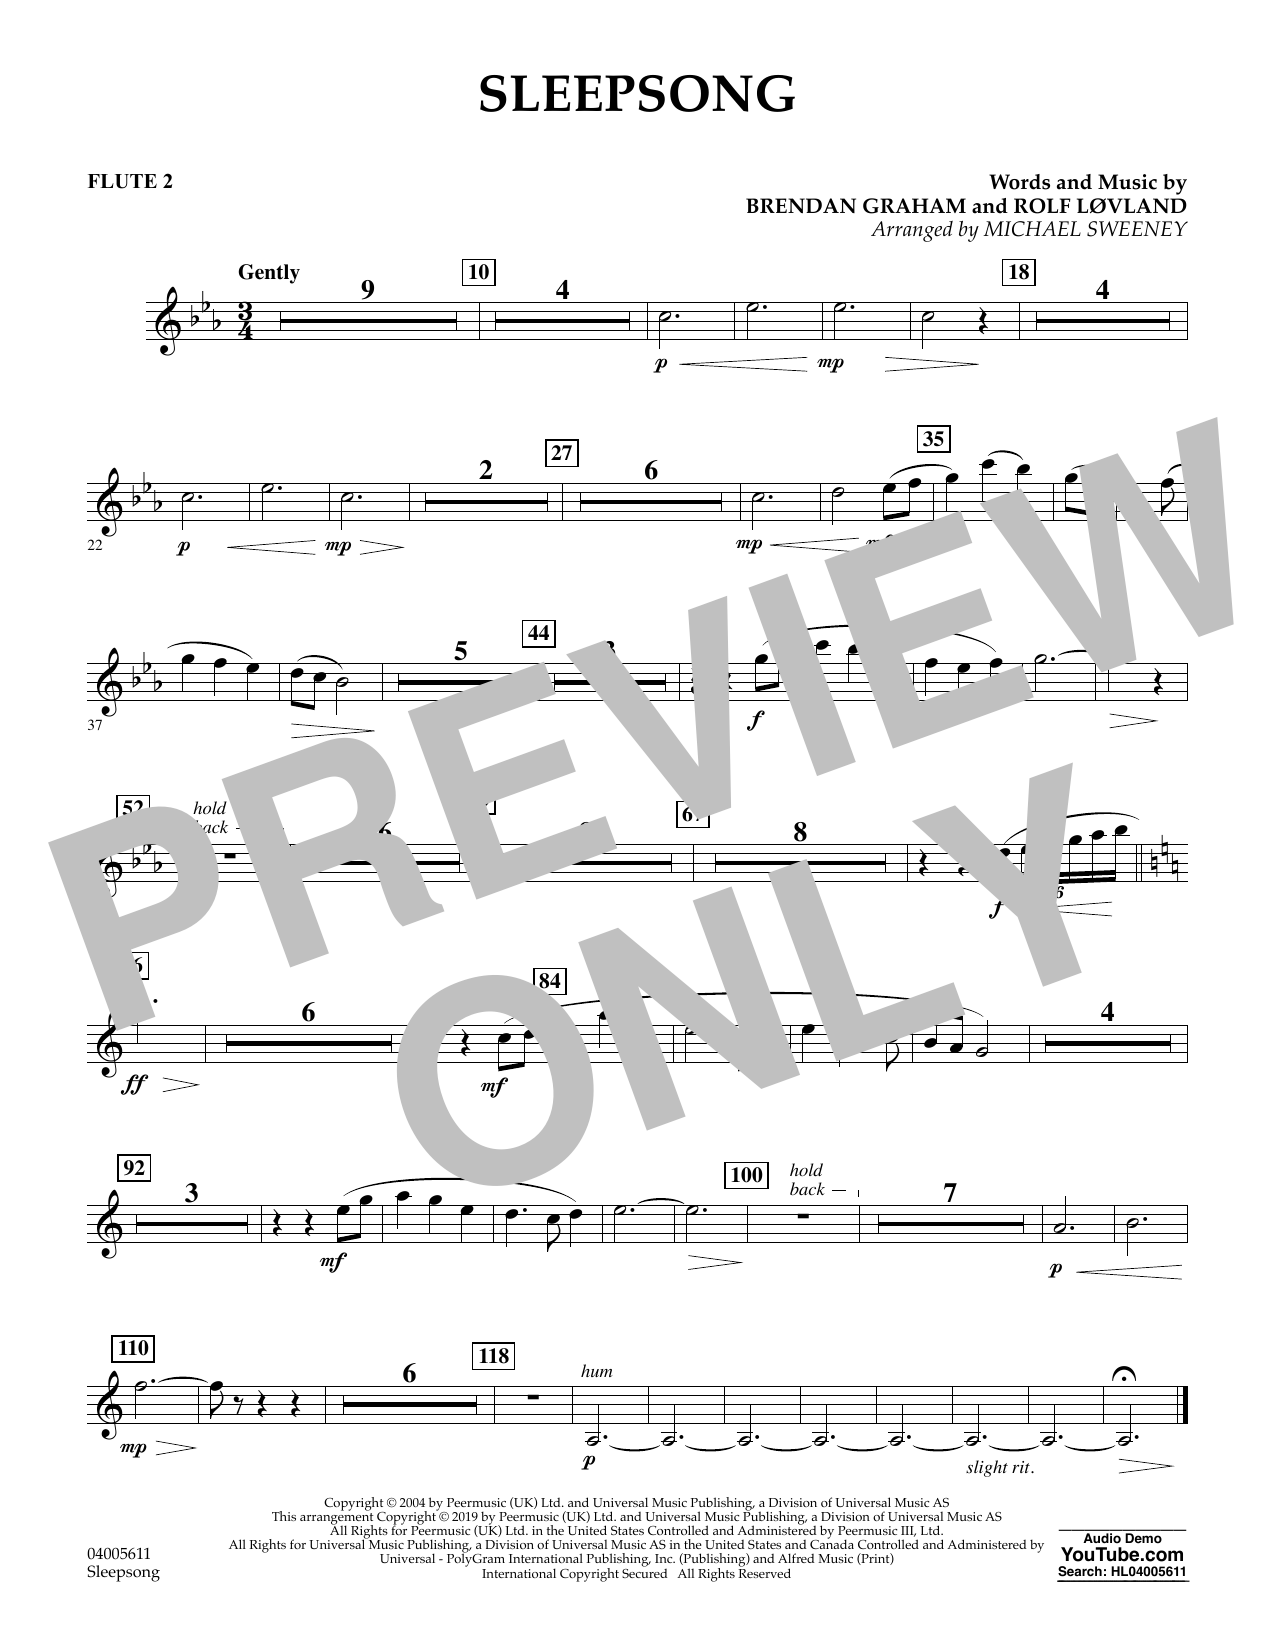 Secret Garden Sleepsong (arr. Michael Sweeney) - Flute 2 sheet music preview music notes and score for Concert Band including 1 page(s)